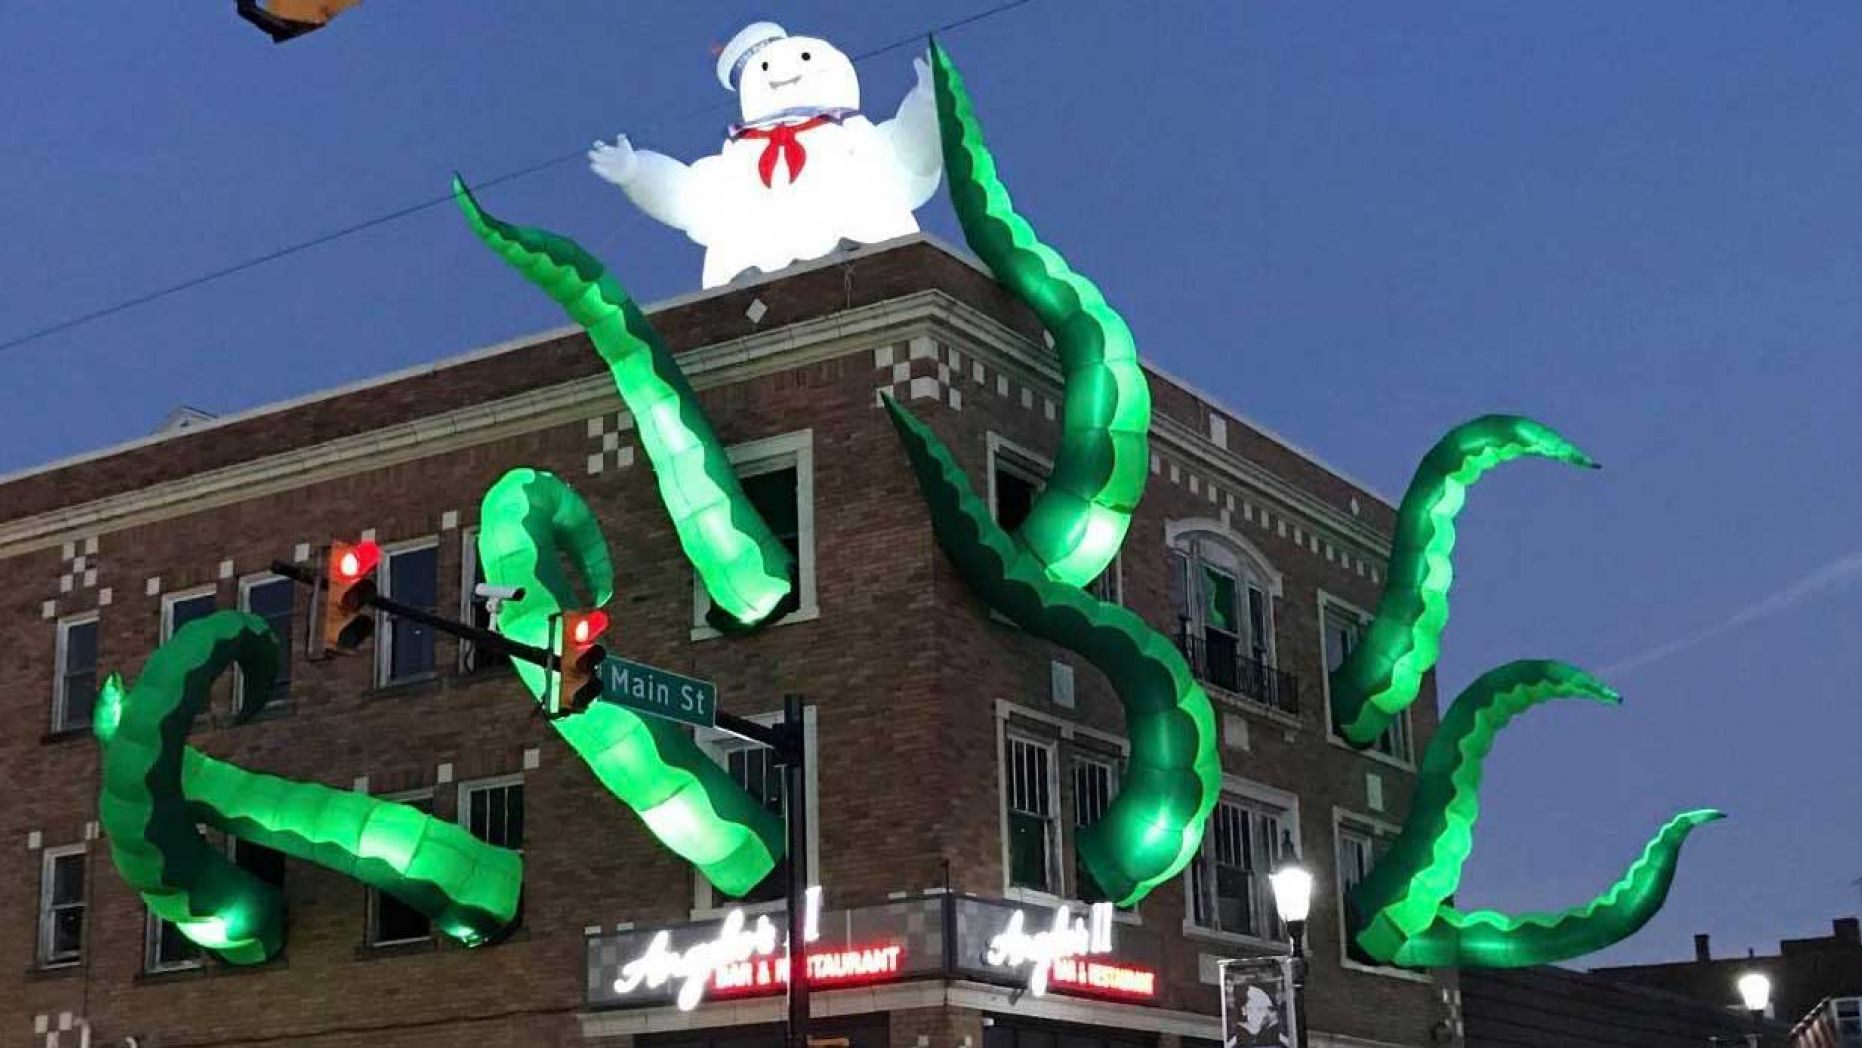 Ghostbusters Halloween Decorations At Pennsylvania Restaurant Earn Praise Whole Town Is Talking About It Fox 46 Charlotte